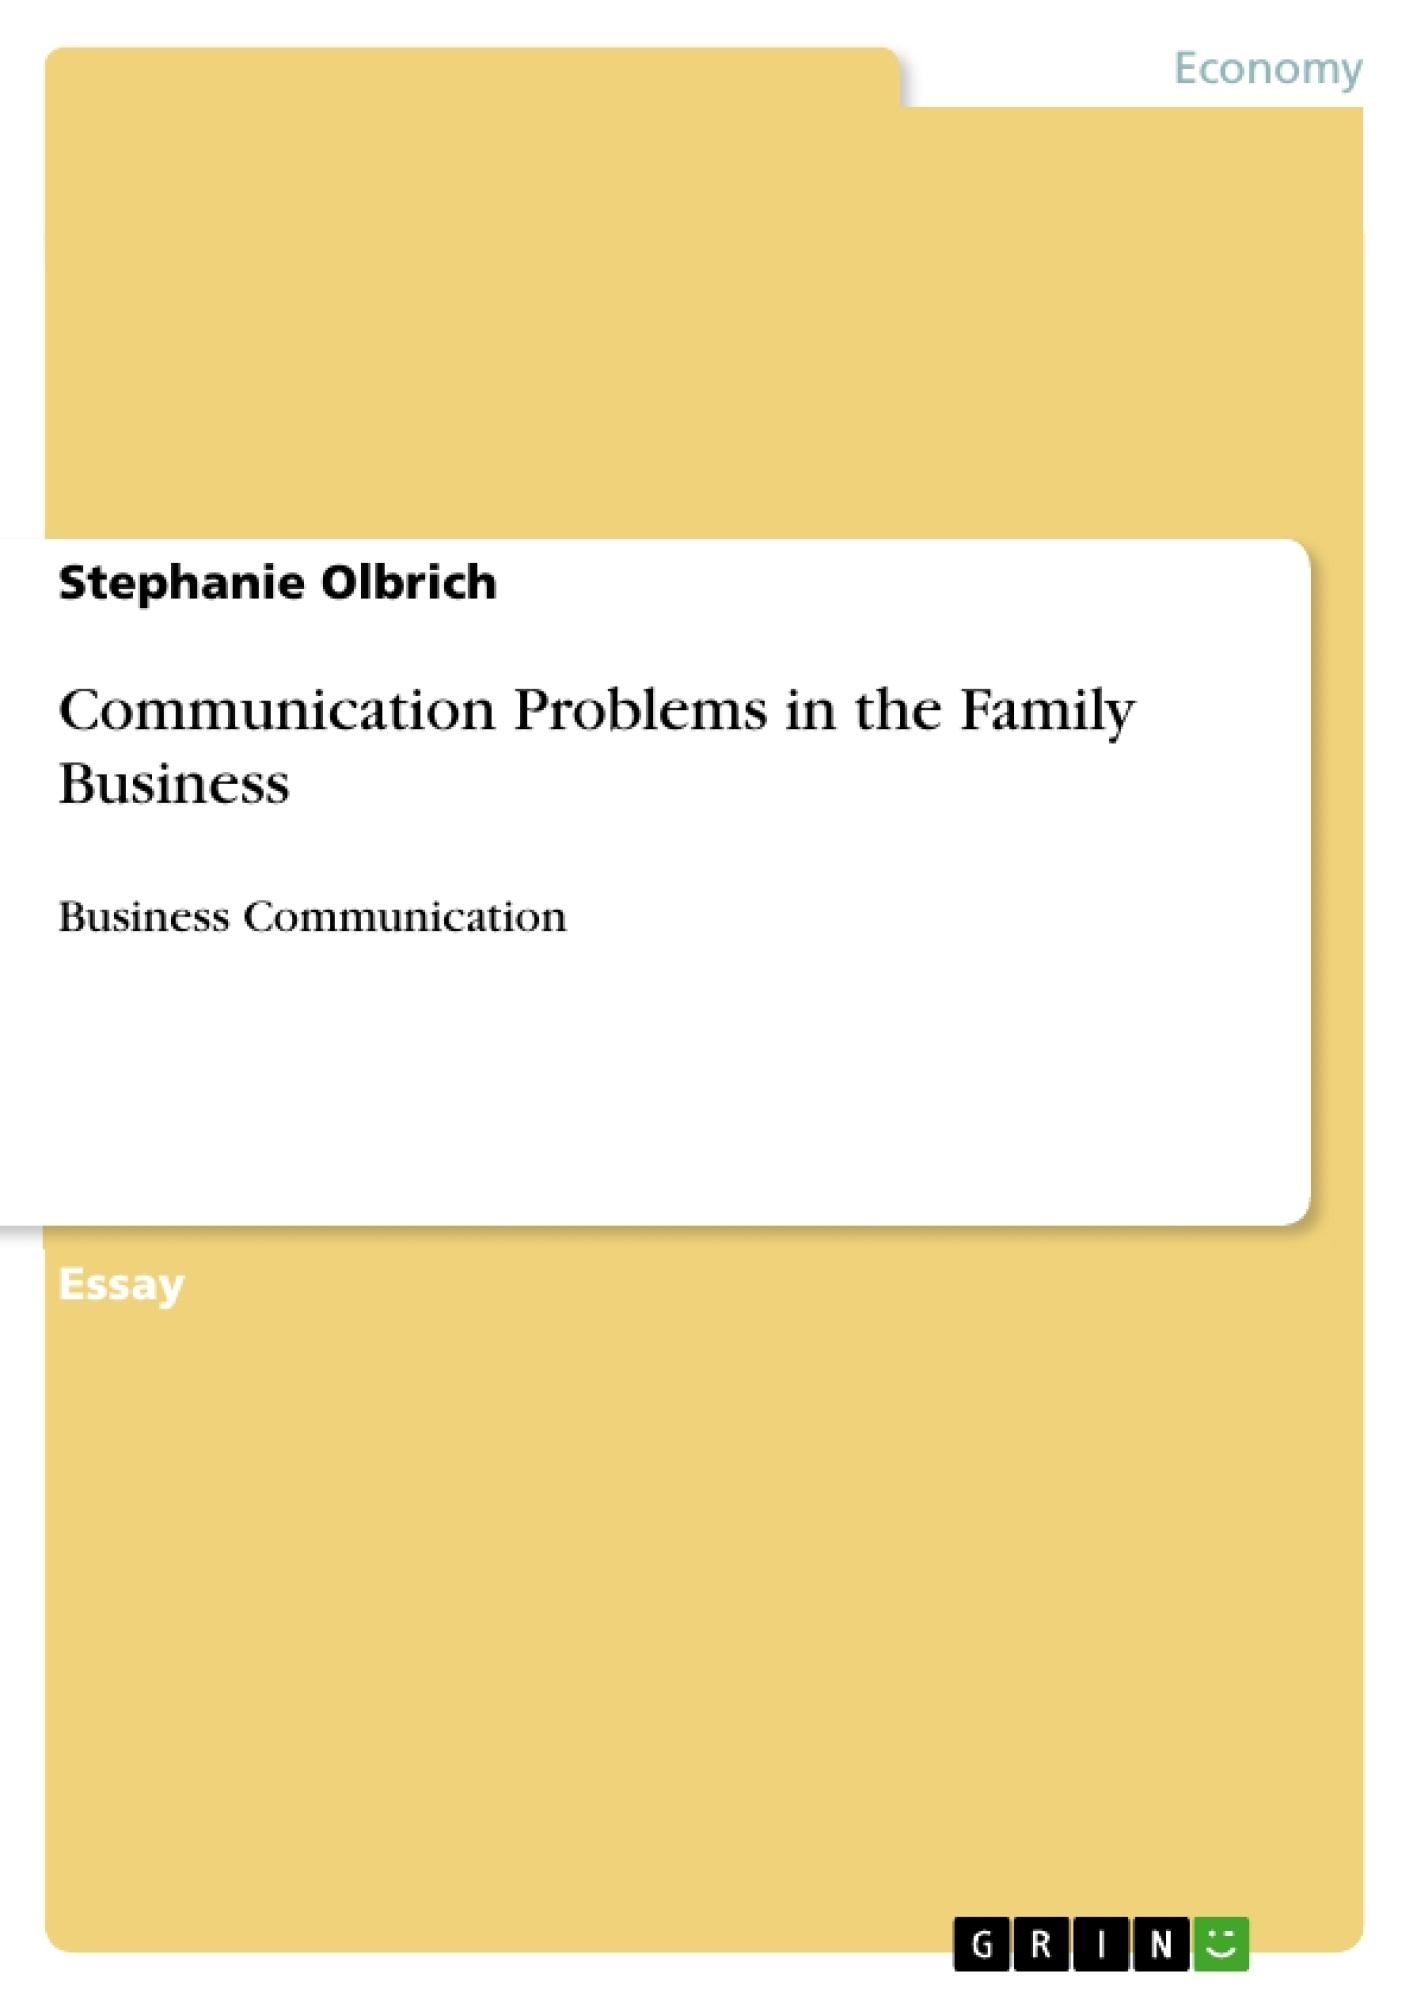 communication problems in the family business publish your communication problems in the family business publish your master s thesis bachelor s thesis essay or term paper